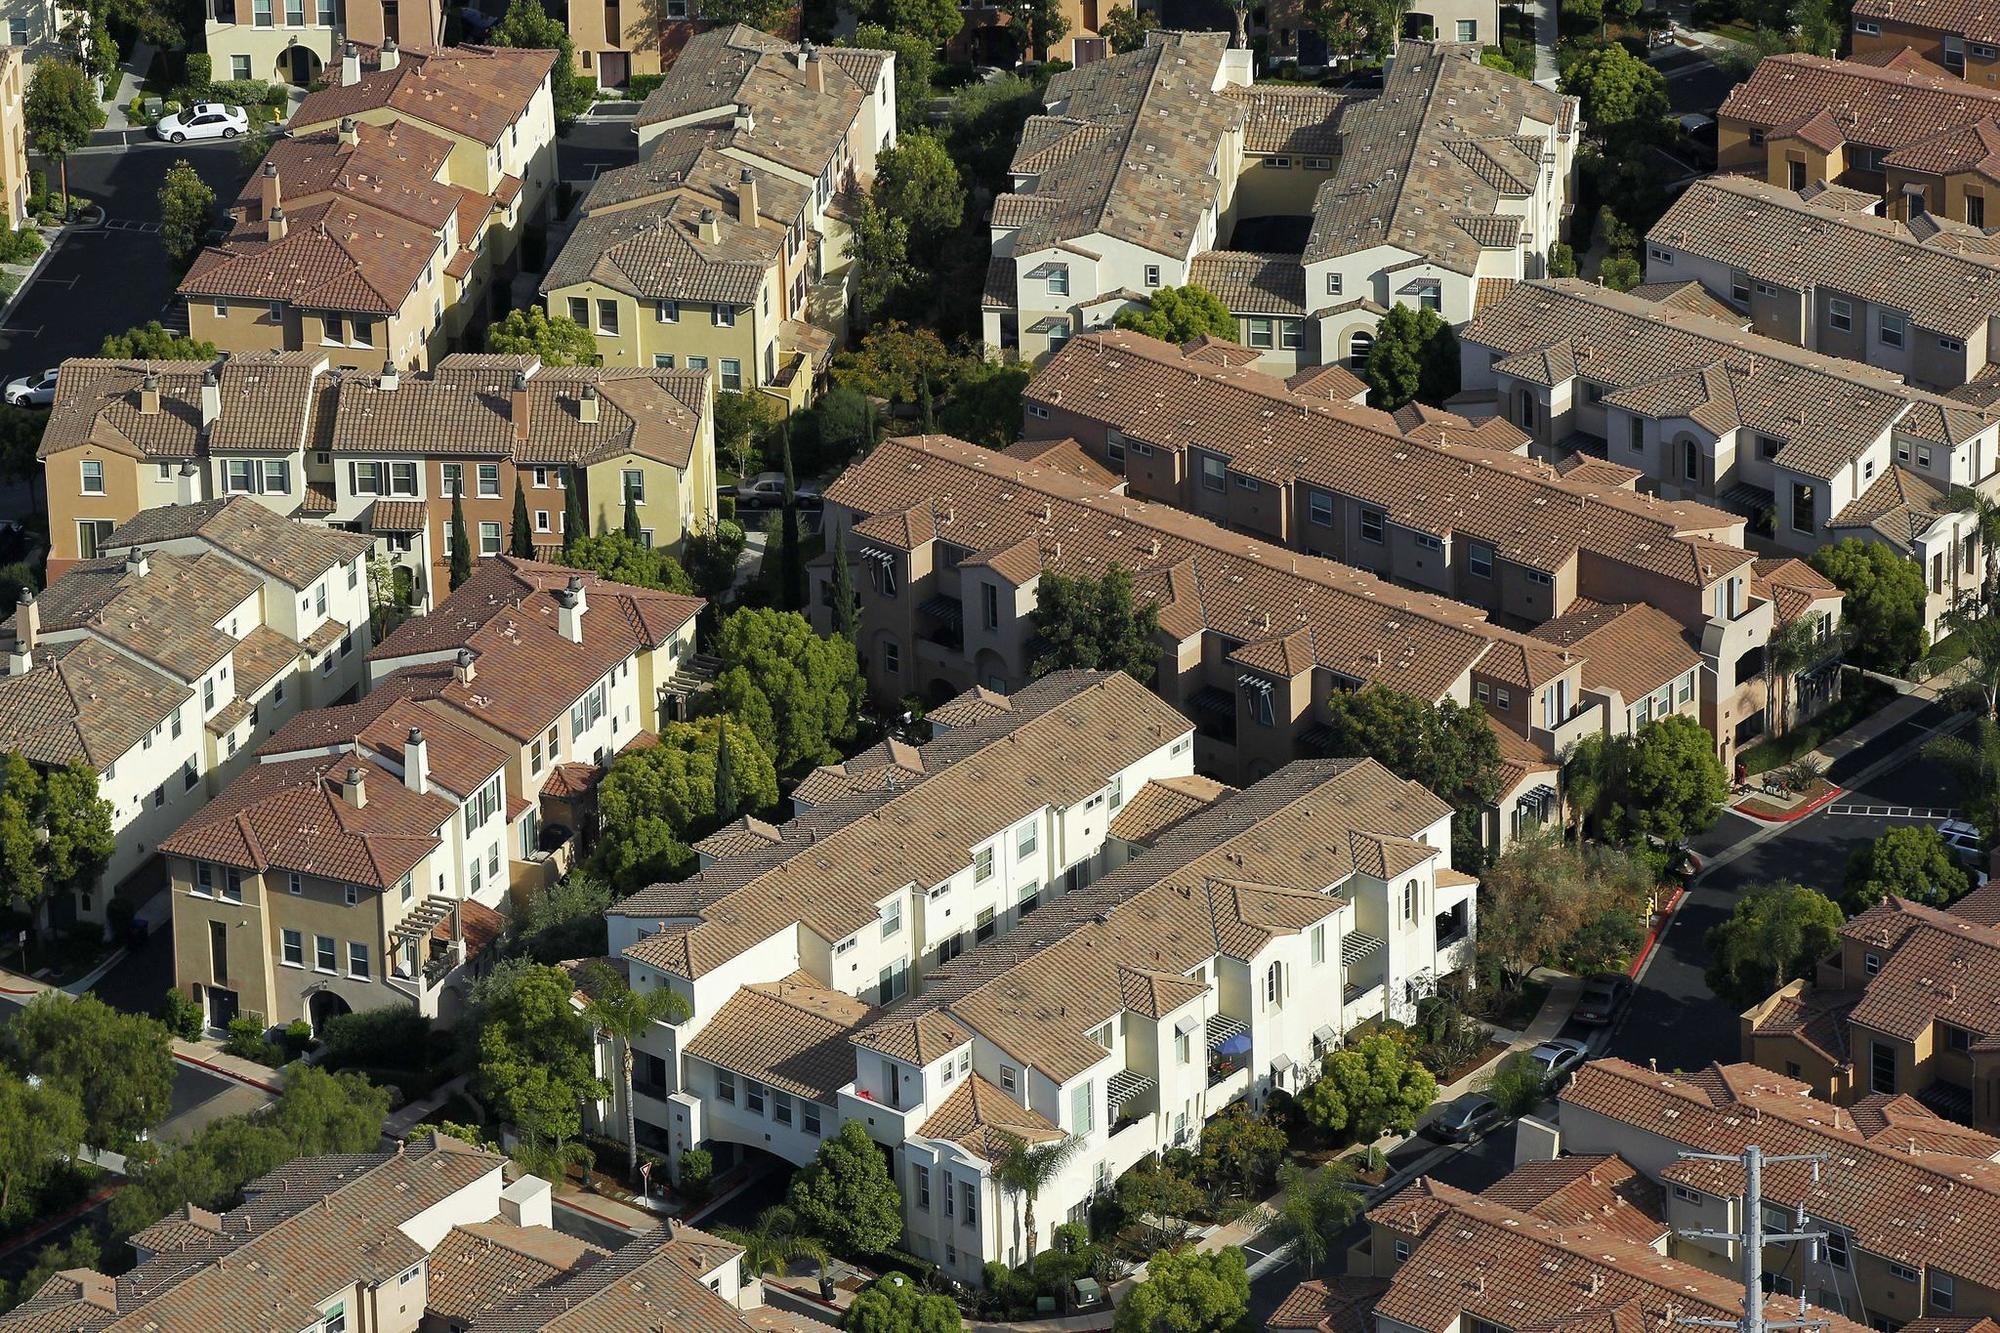 A number of new housing complexs have been built along Friars Road in Mission Valley in recent years.